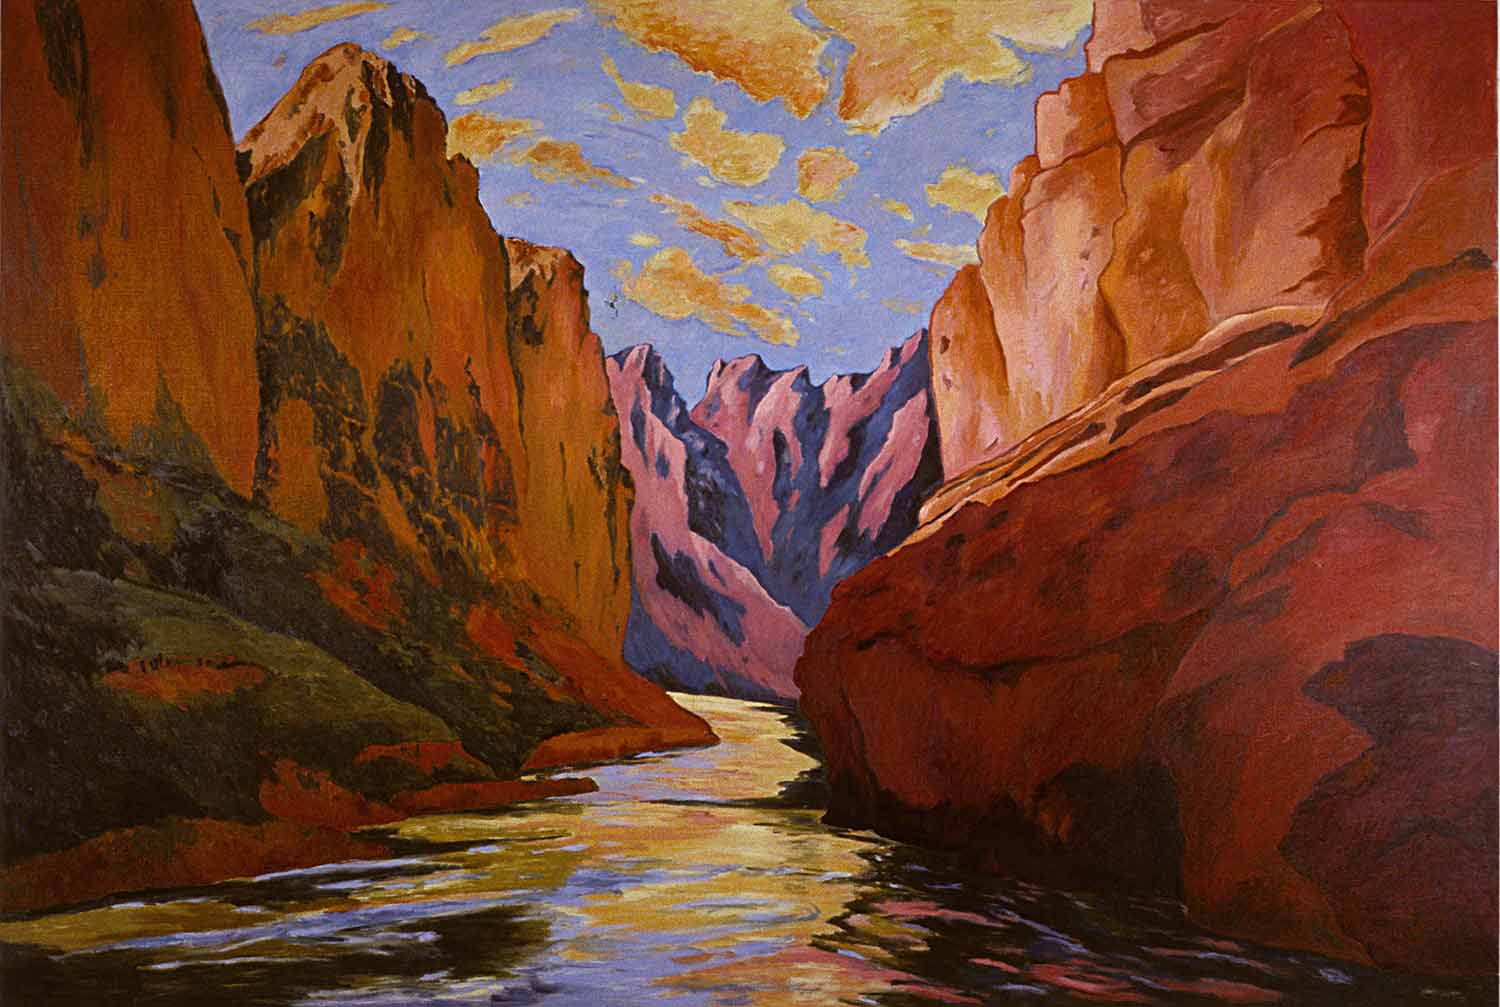 Grand Canyon #4, Oil on canvas, Paintings of California by Mary Alice Copp